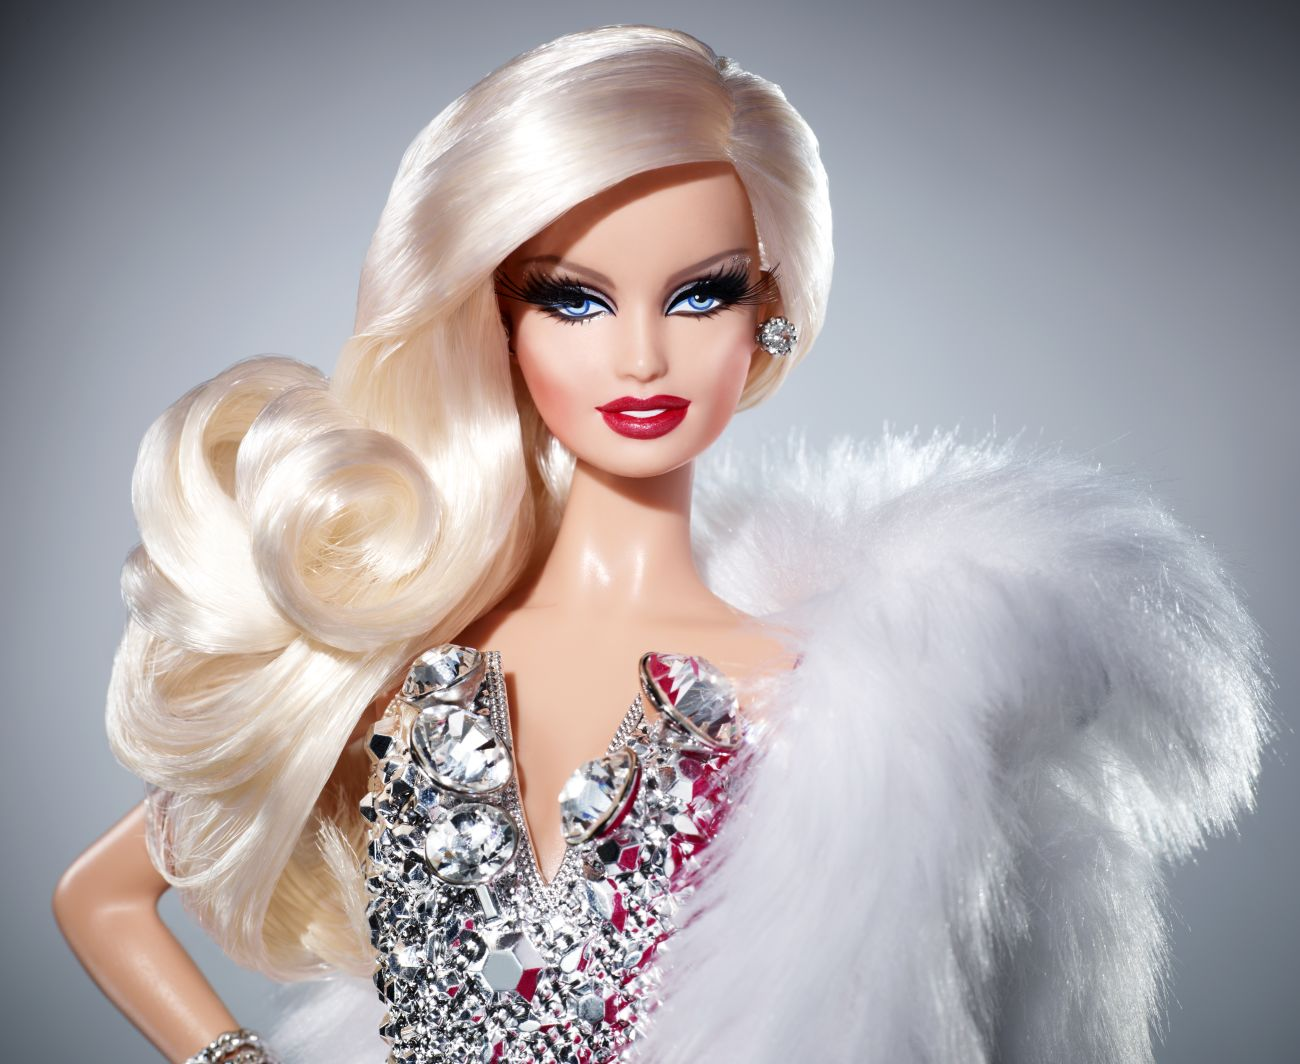 Diamond Barbie (Photographer:Paul Jordan/Stylist: Mary Jordan)